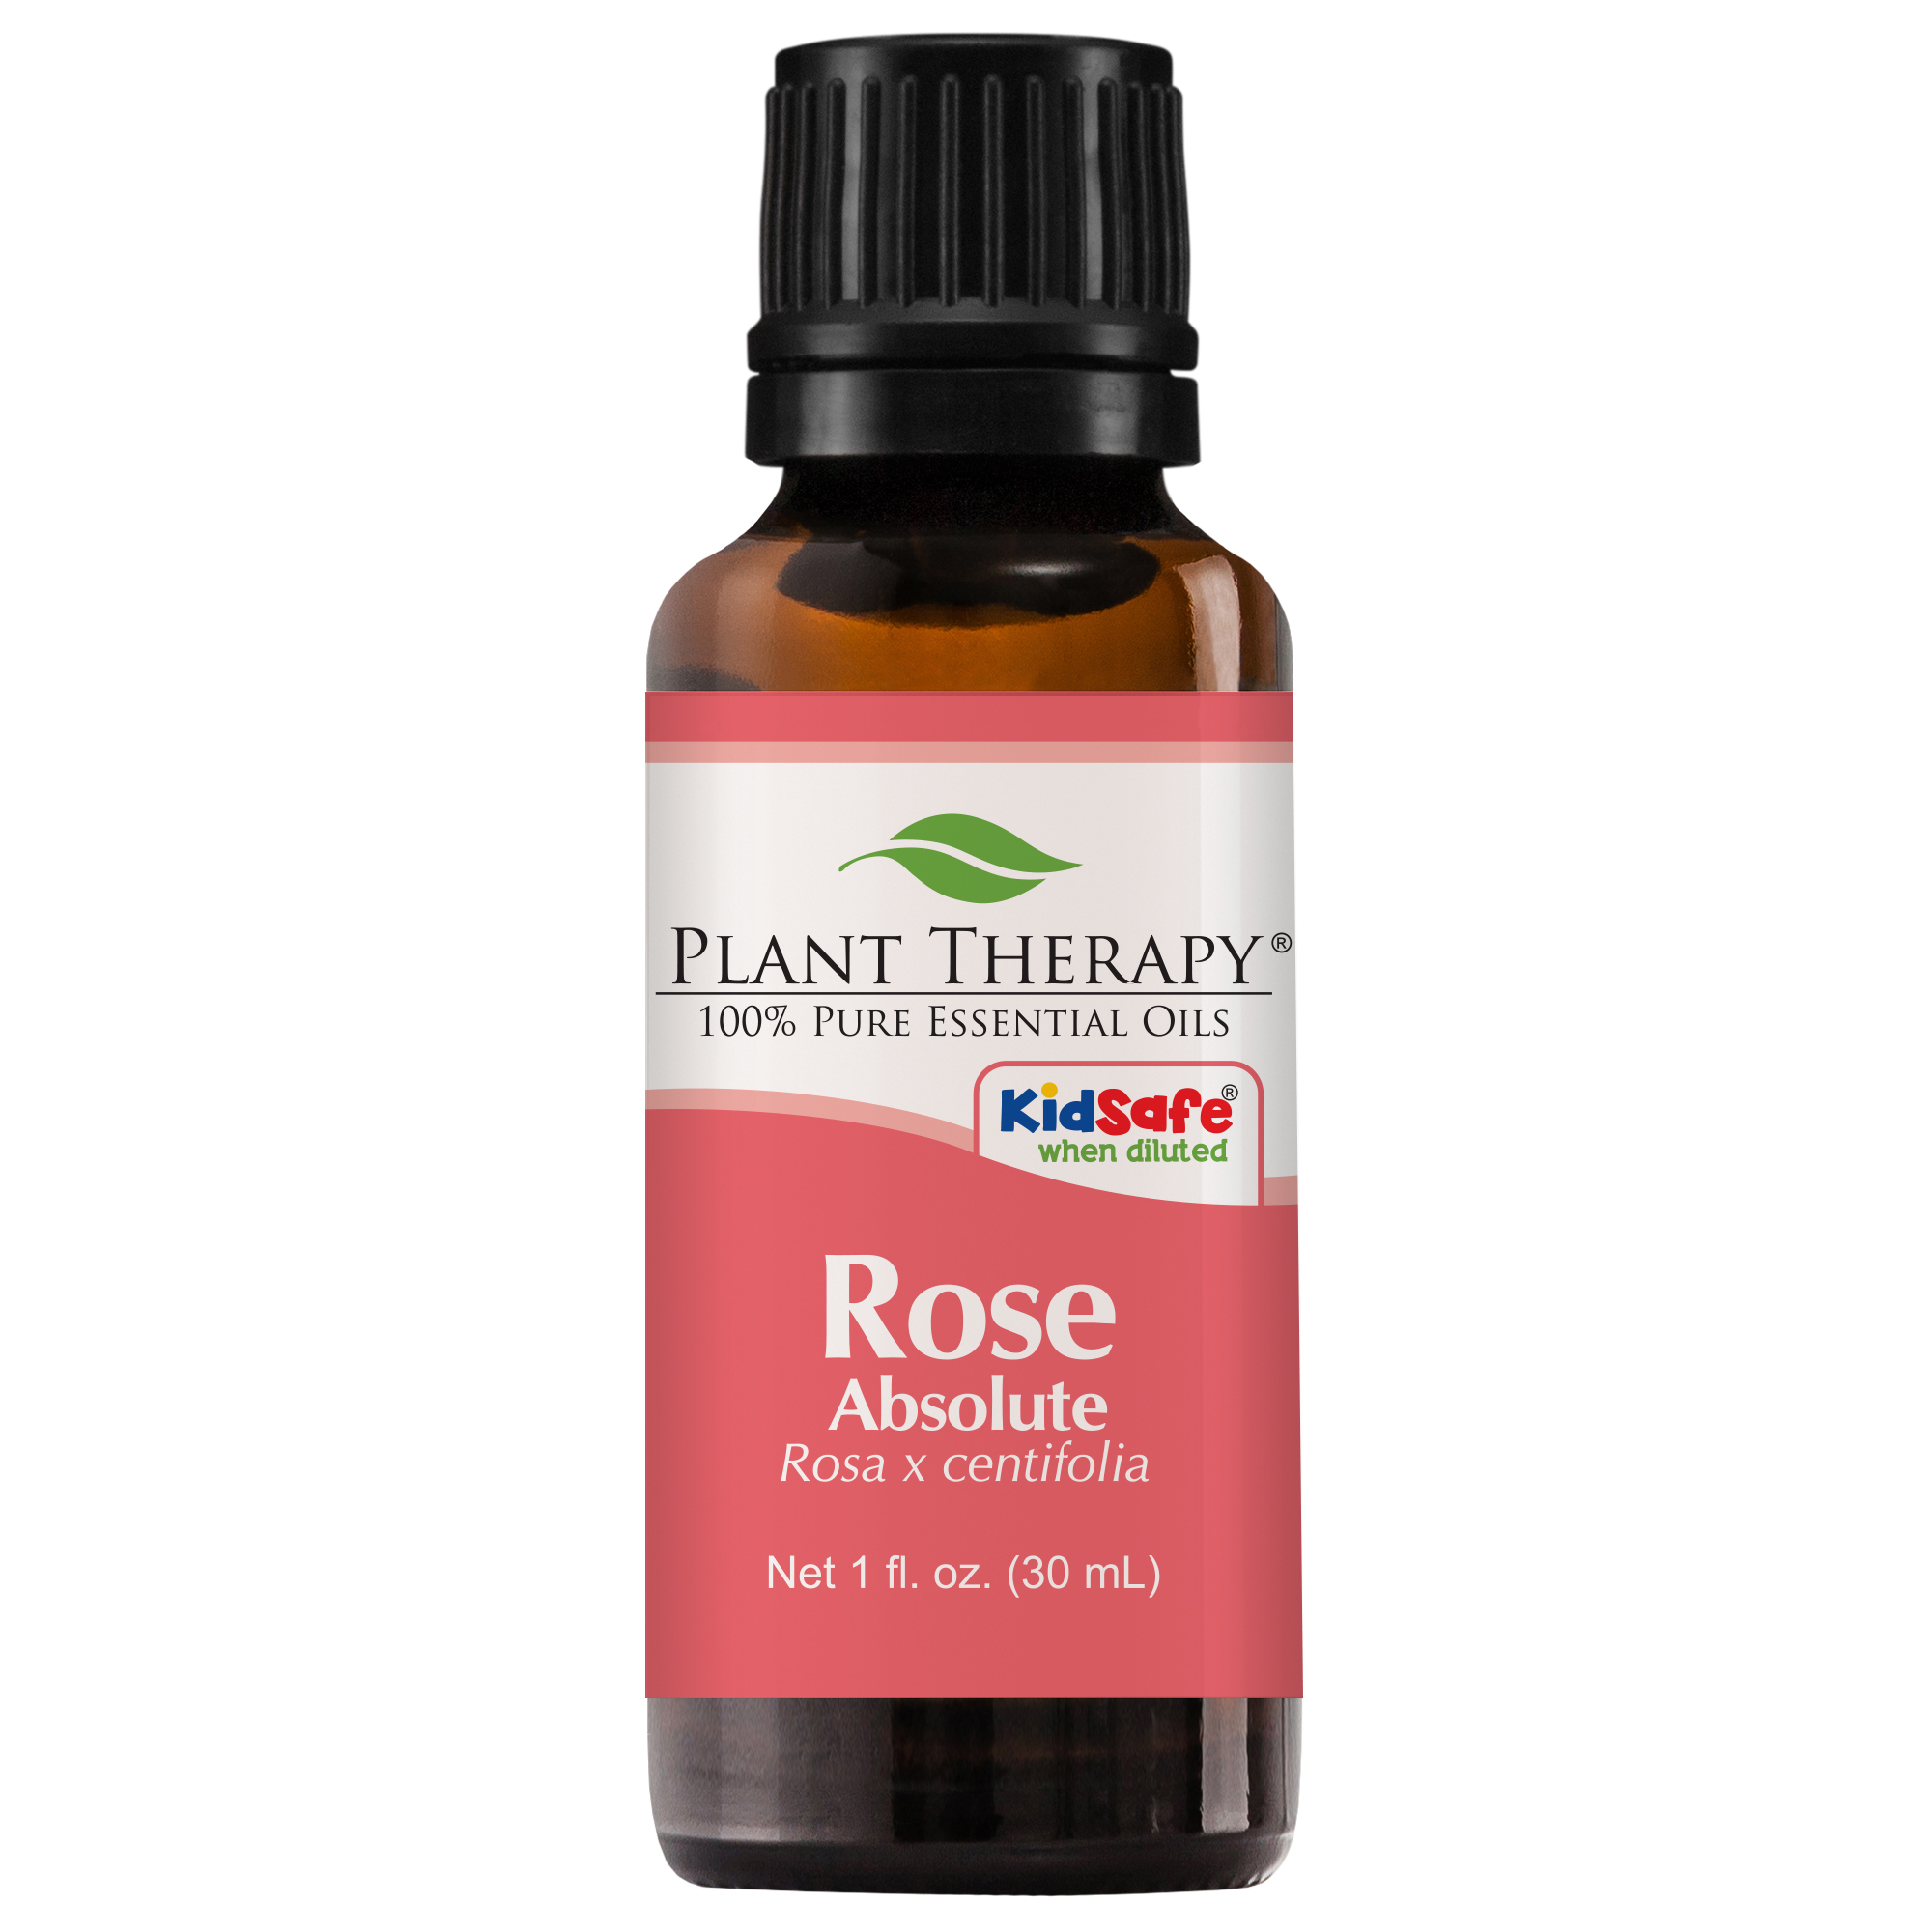 Plant Therapy Rose Absolute Essential Oil | 100% Pure, Undiluted, Natural Aromatherapy | 30 mL